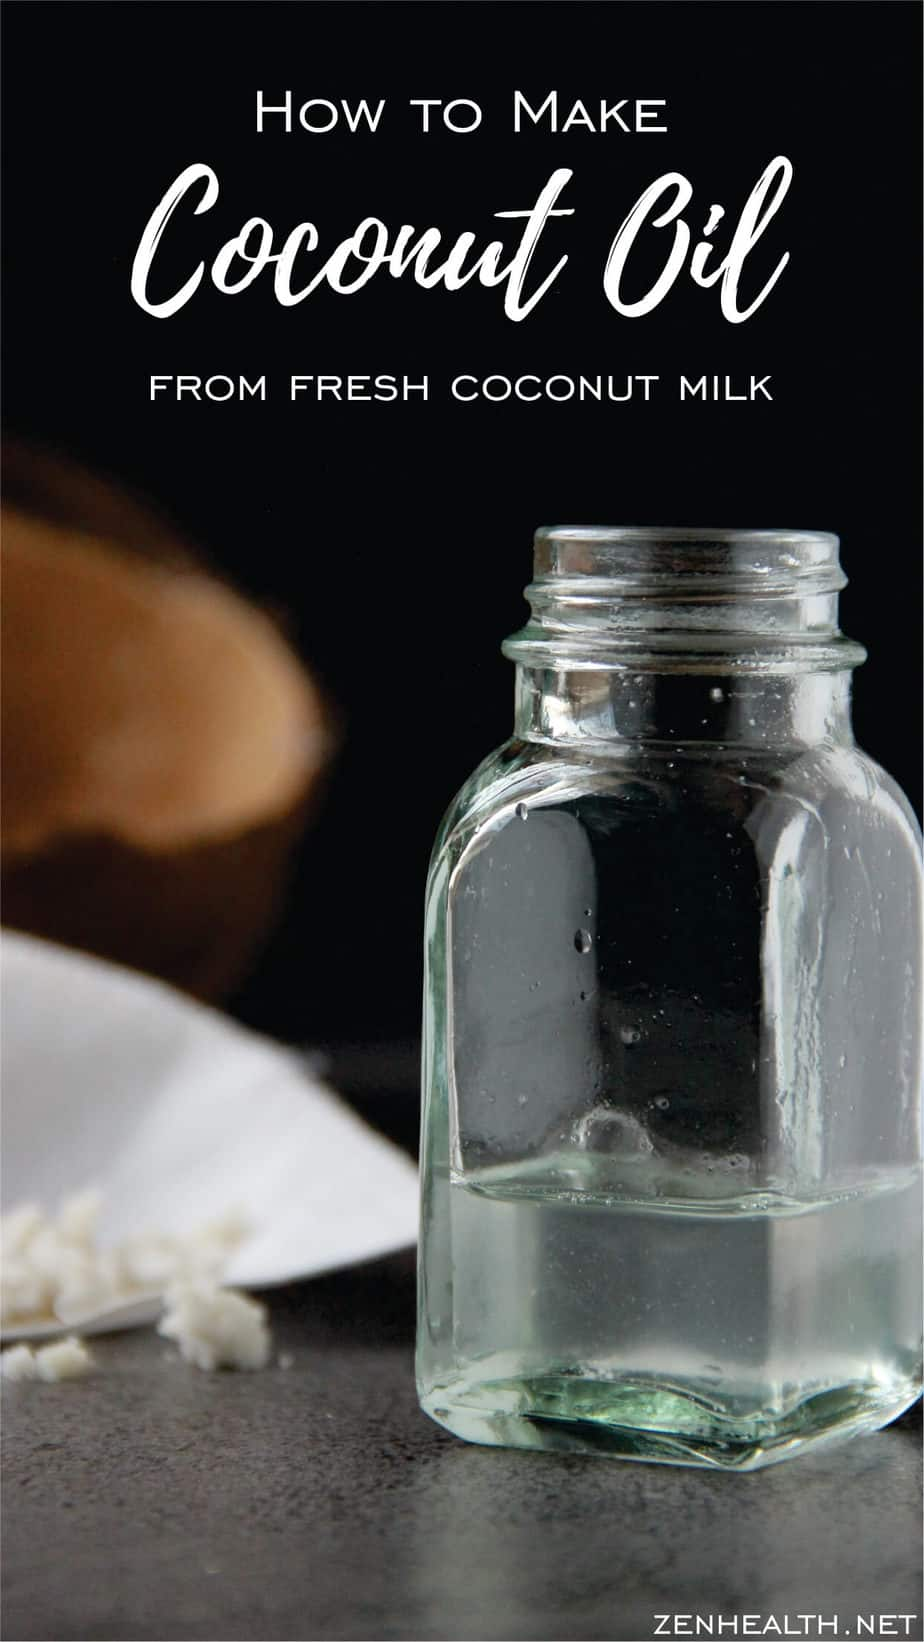 How to Make Coconut Oil from Fresh Coconut Milk